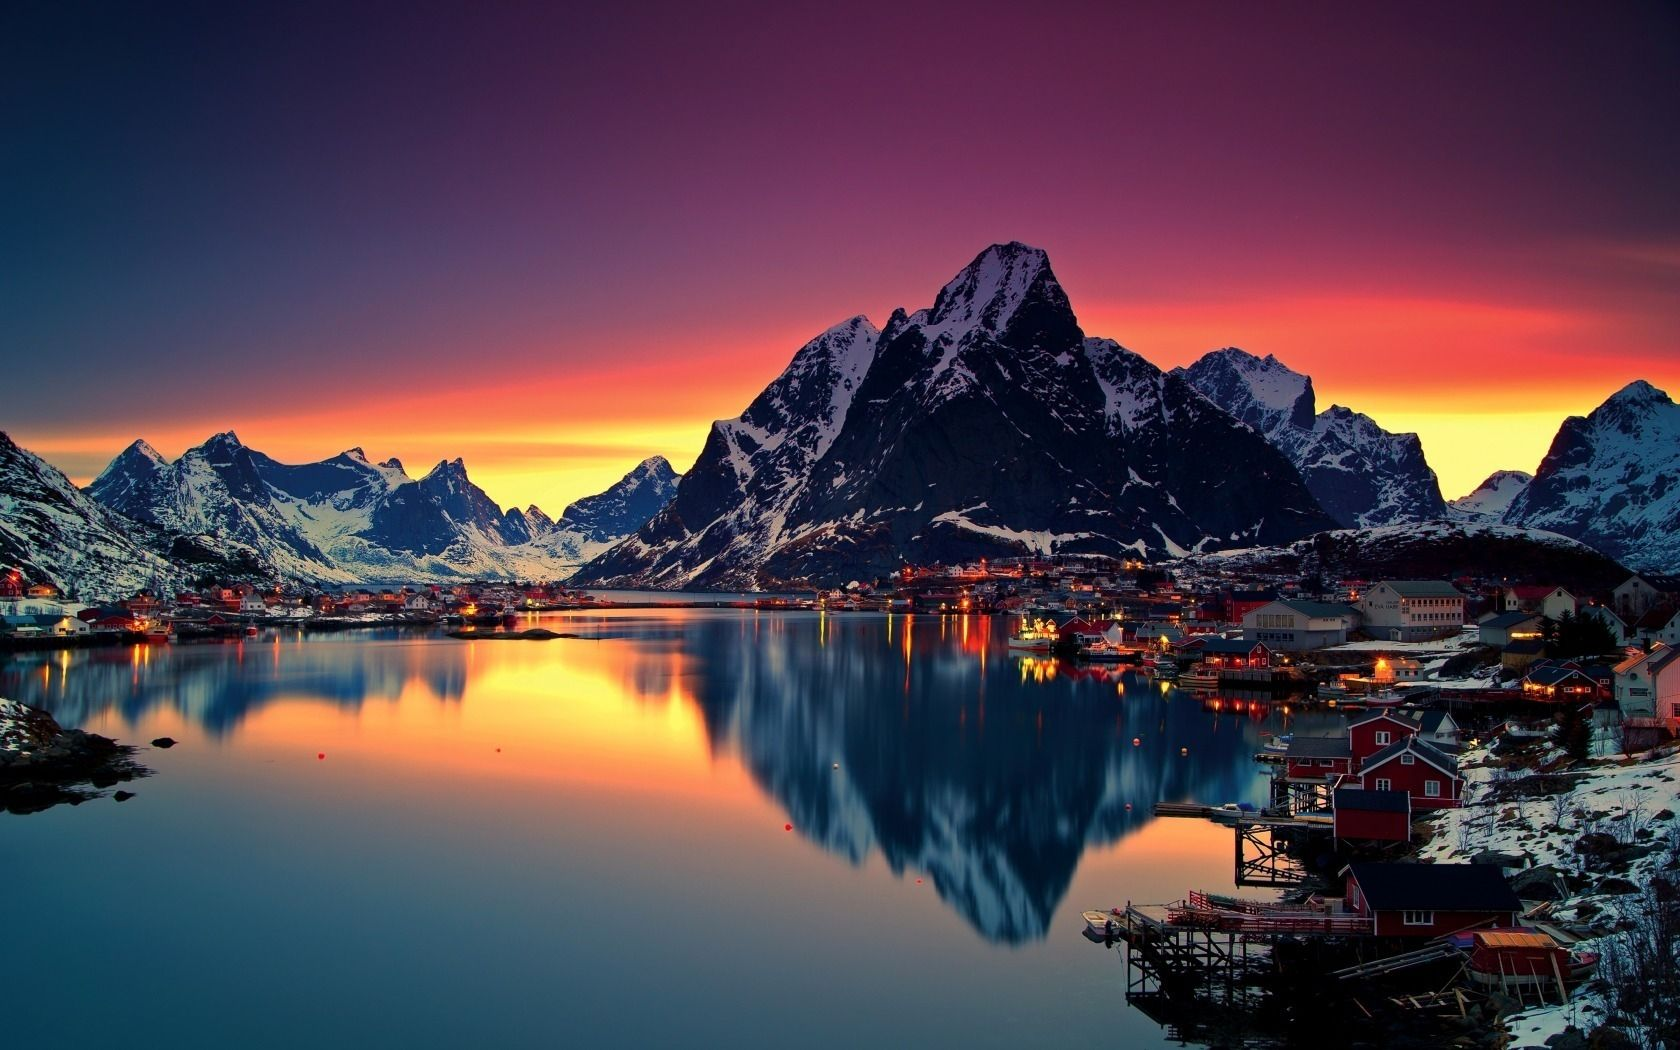 4k Wallpaper Places To See Beautiful Norway Wonders Of The World